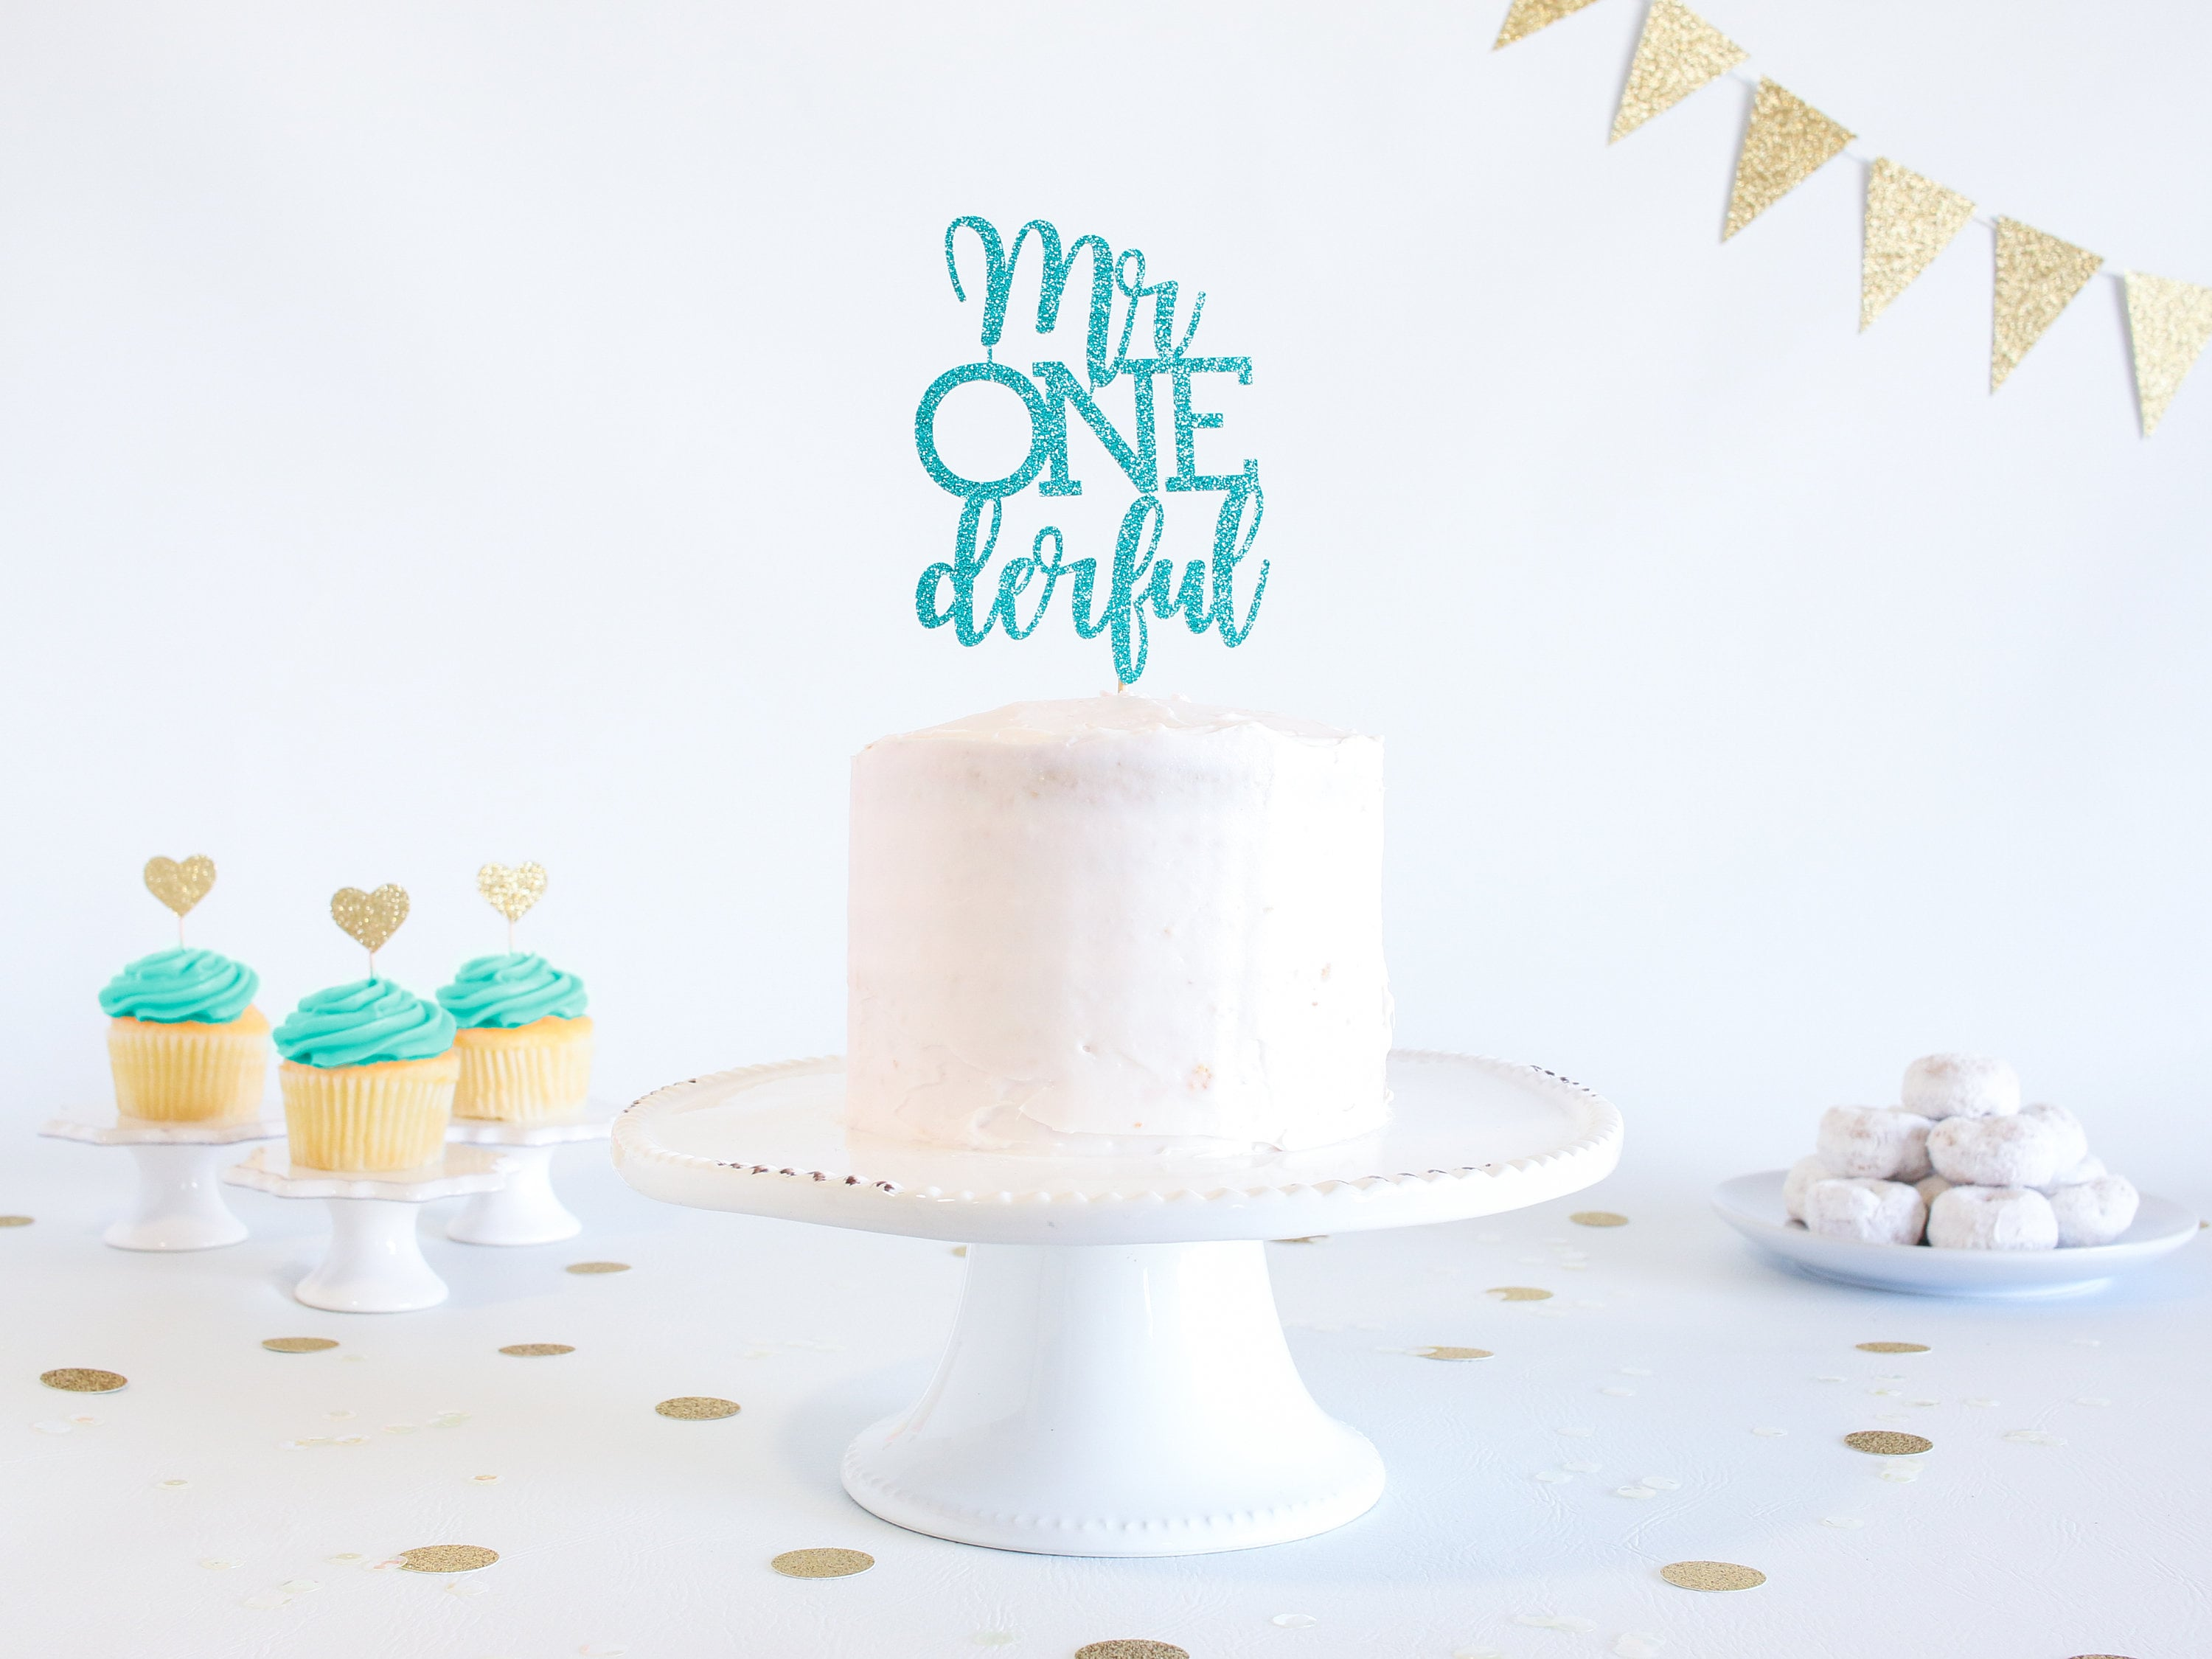 Sensational Mr Onederful Cake Topper Glitter 1St Birthday Smash Cake Funny Birthday Cards Online Alyptdamsfinfo